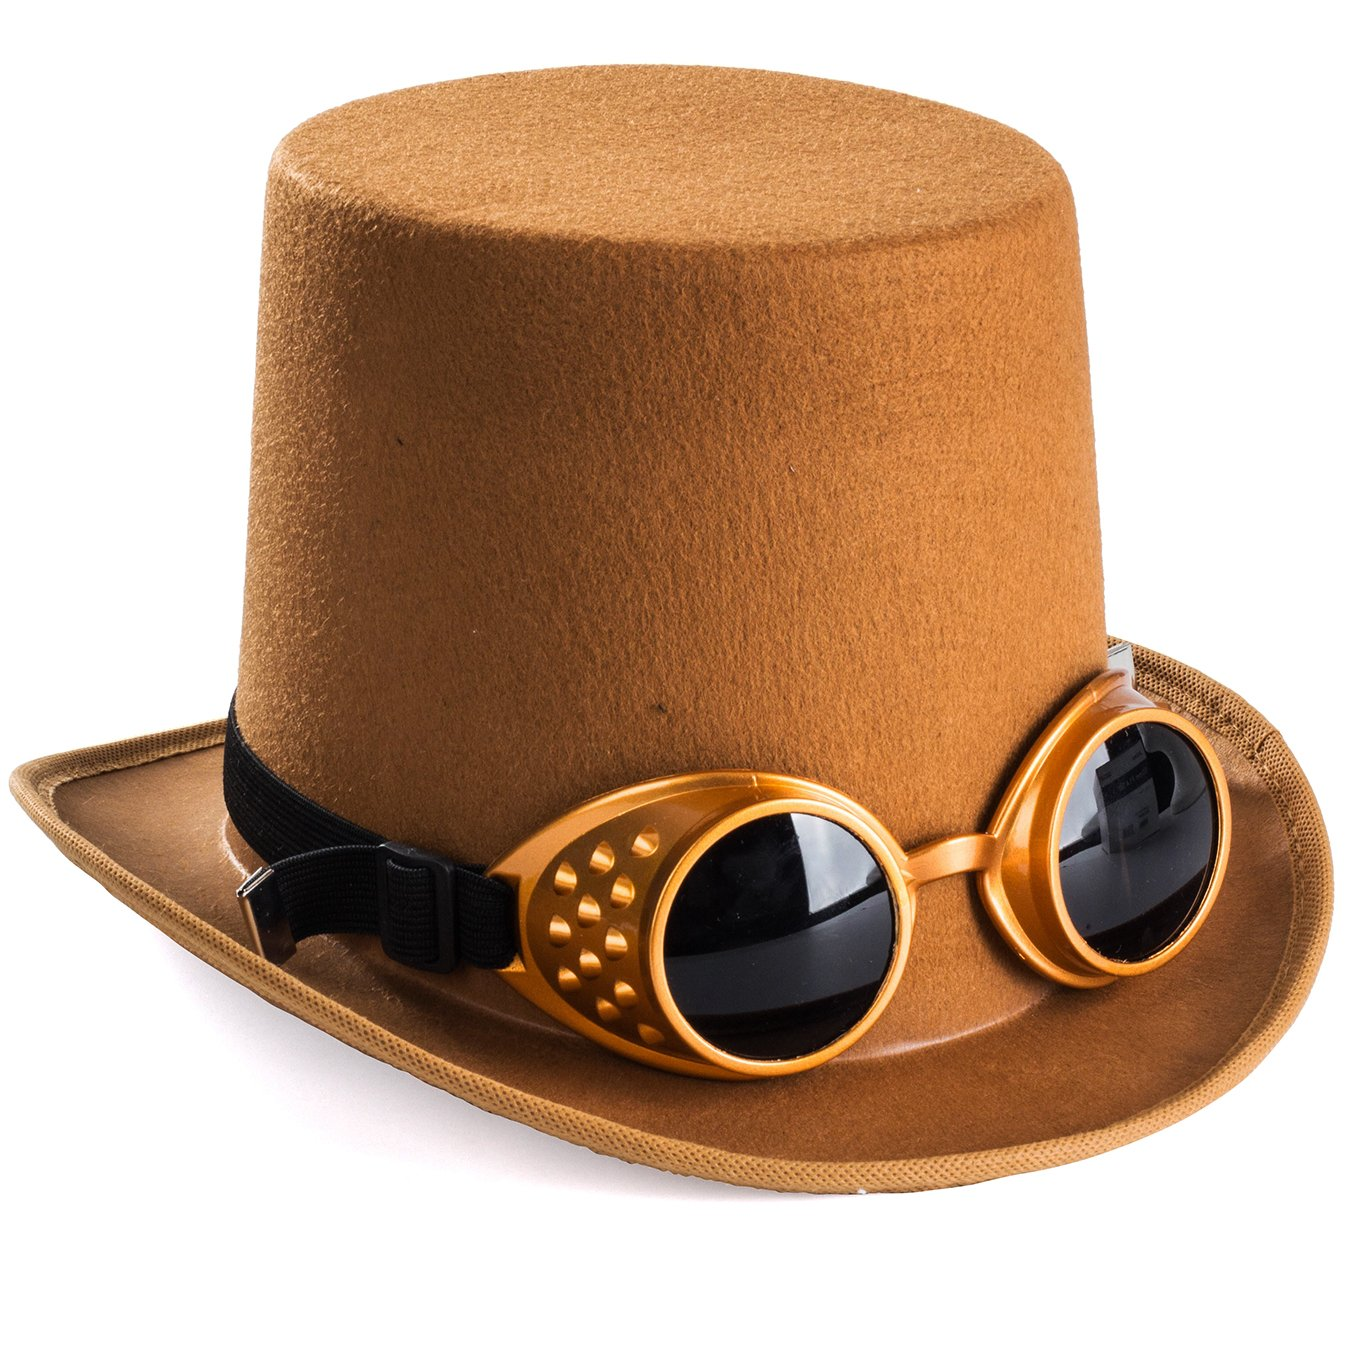 de5f0f00b2362 Top 10 wholesale Steampunk Costume Hats - Chinabrands.com